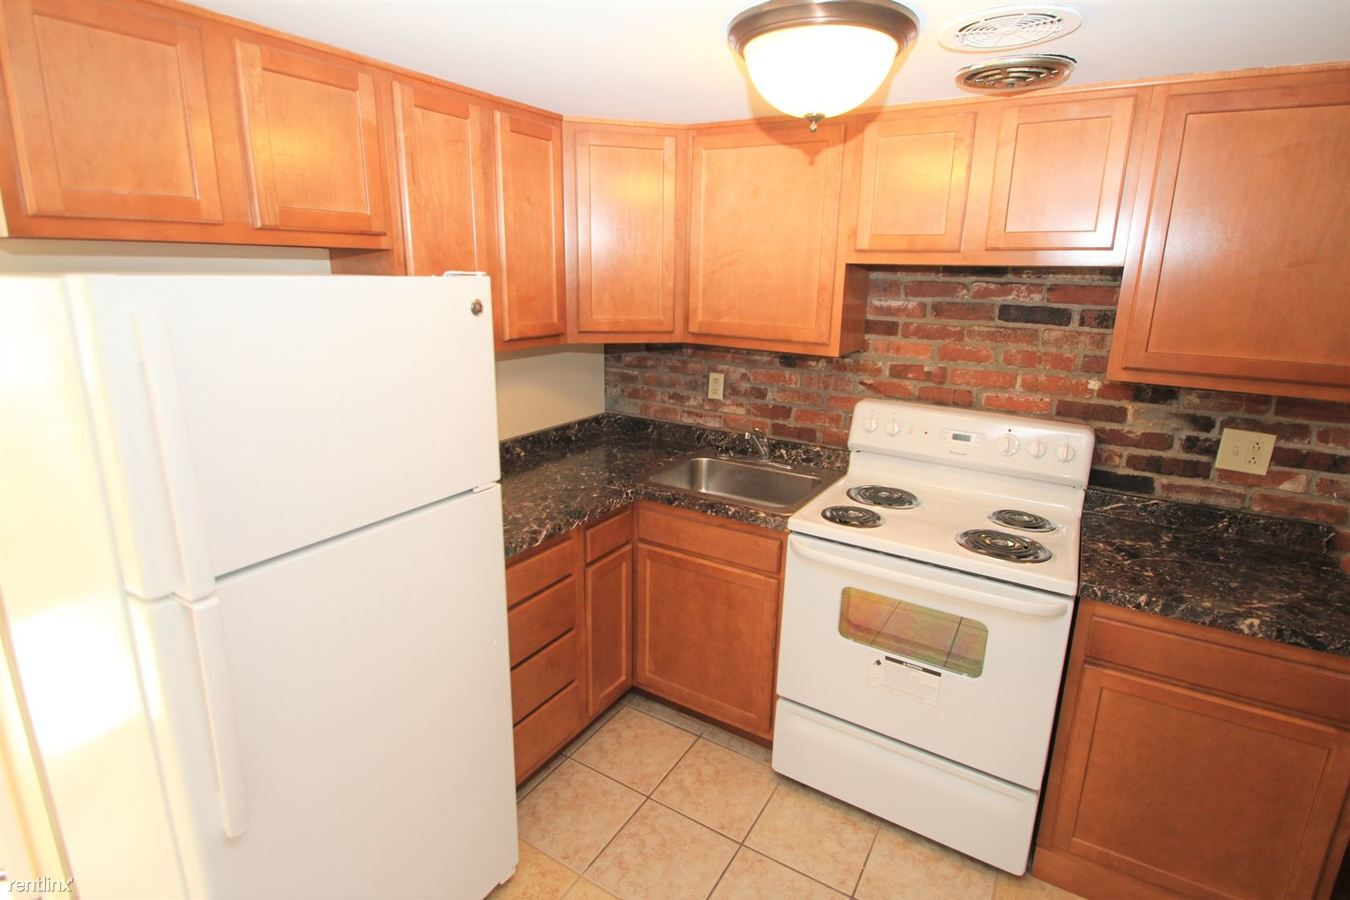 2 Bedrooms 1 Bathroom Apartment for rent at 285 Moon Clinton Rd in Moon Township, PA